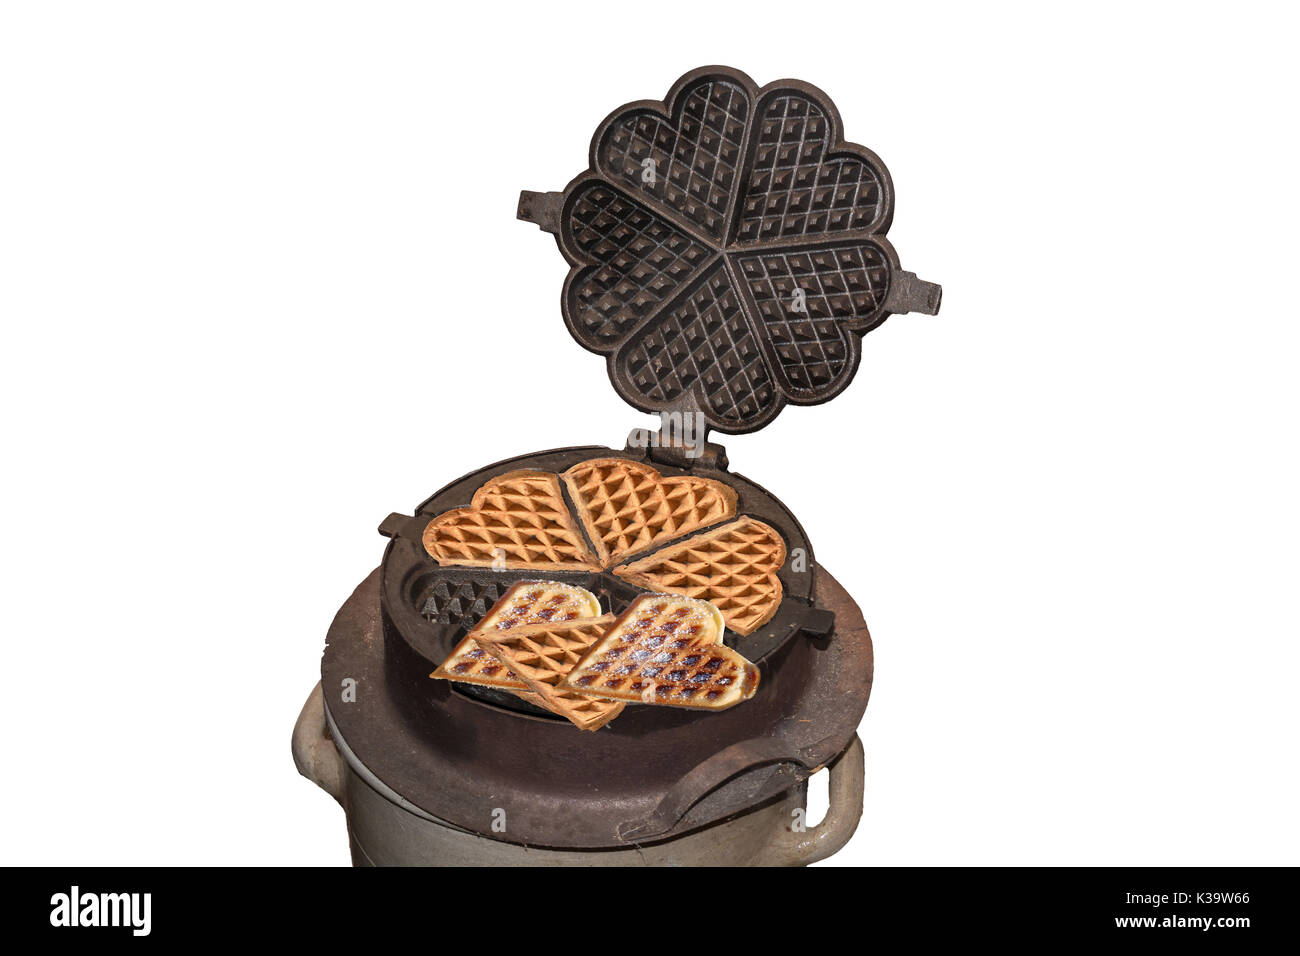 Antique cast iron waffle maker for the open fire place. - Stock Image